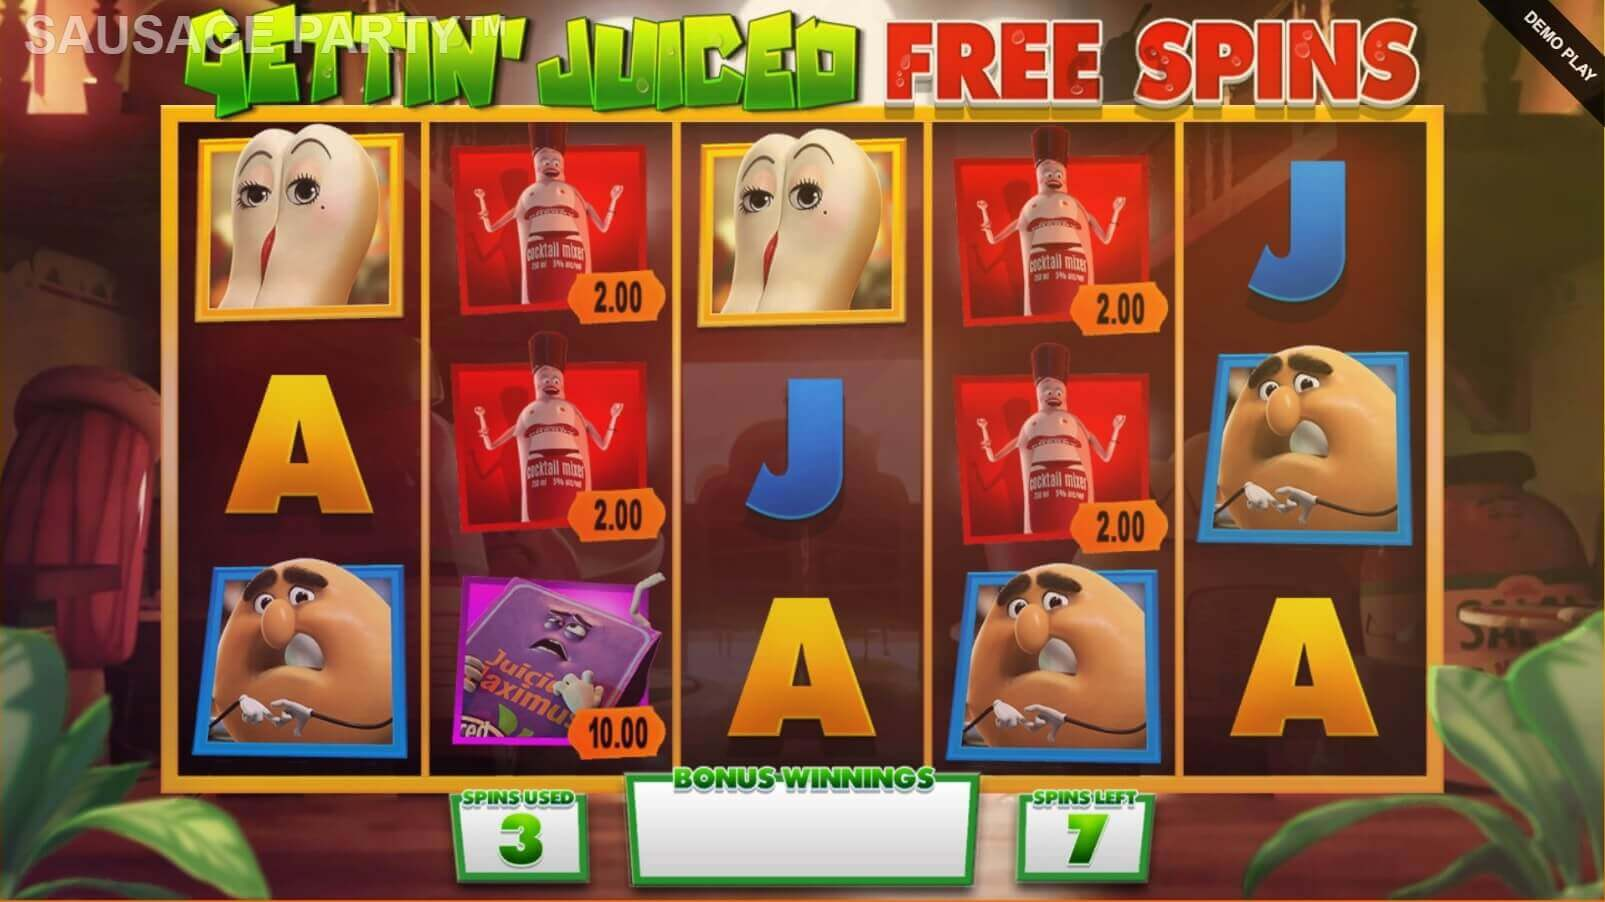 Sausage Party Slot Gameplay